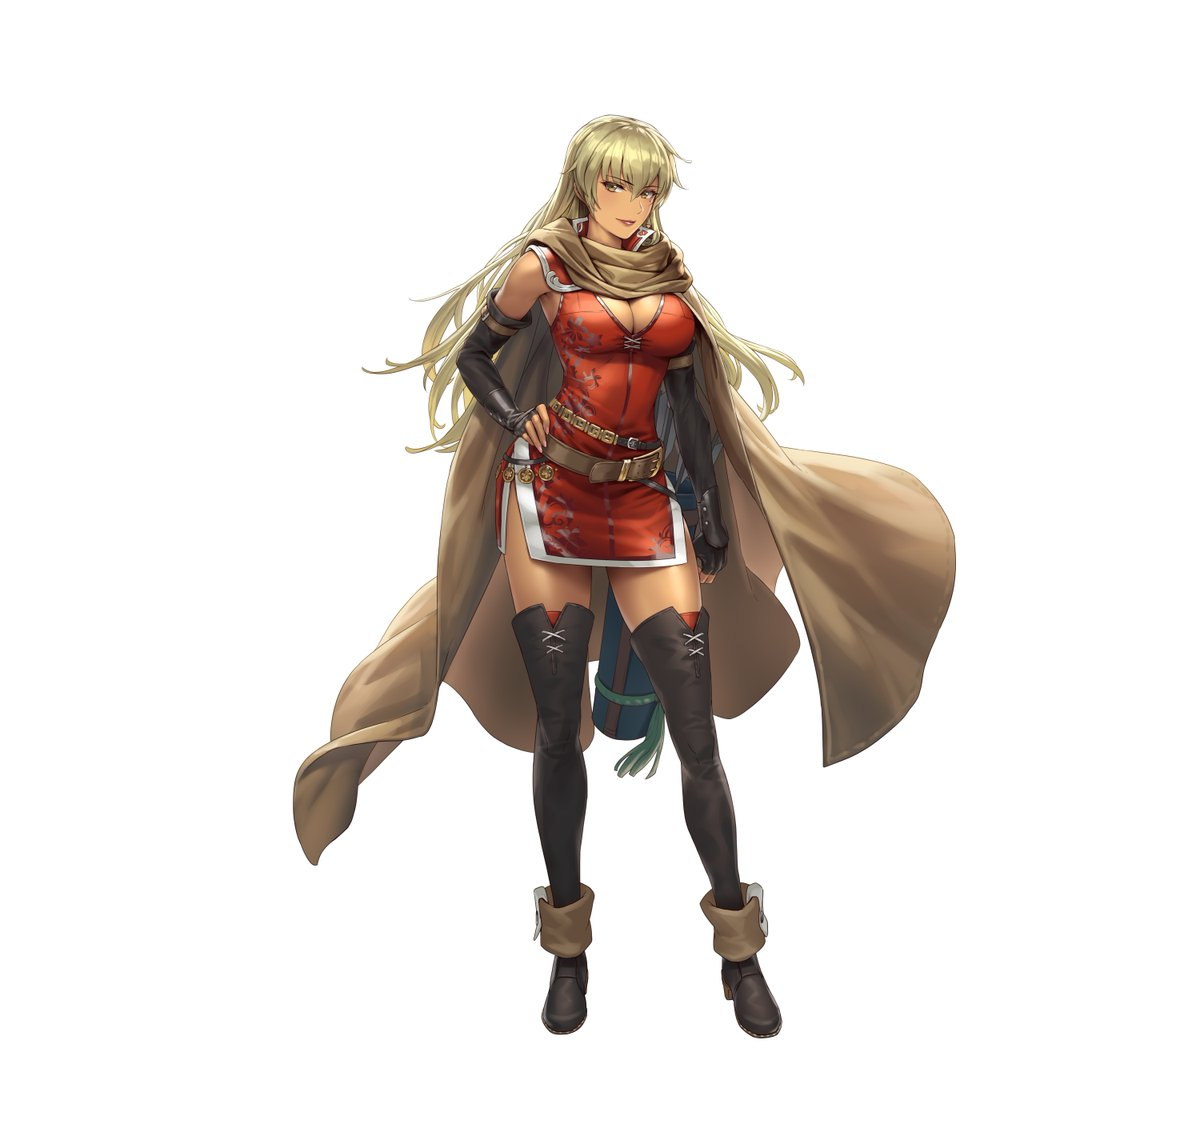 Meet Igrene: Nabata Protector from the #FireEmblem: The Binding Blade game. Daughter of Hawkeye and protector of Nabata. Although she has lost her family, she is stalwart in her duty. #FEHeroes guide.fire-emblem-heroes.com/en-US/05010003…